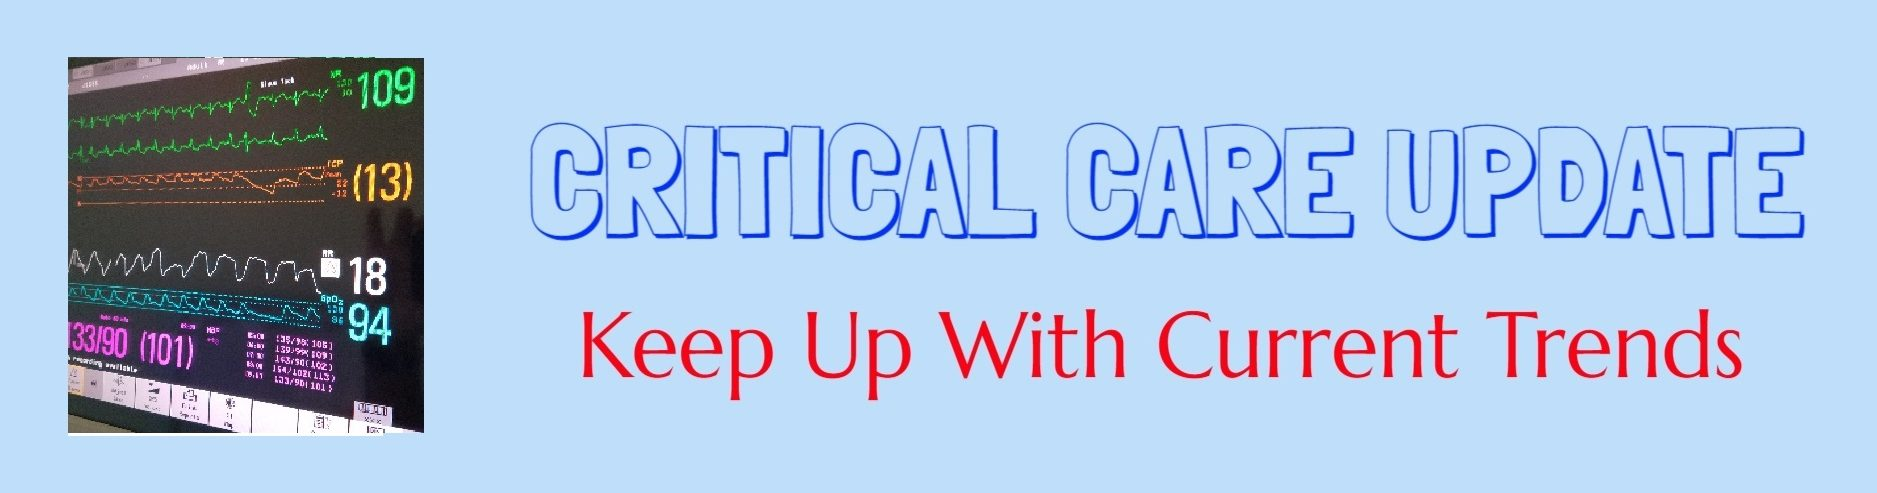 Critical Care Updates